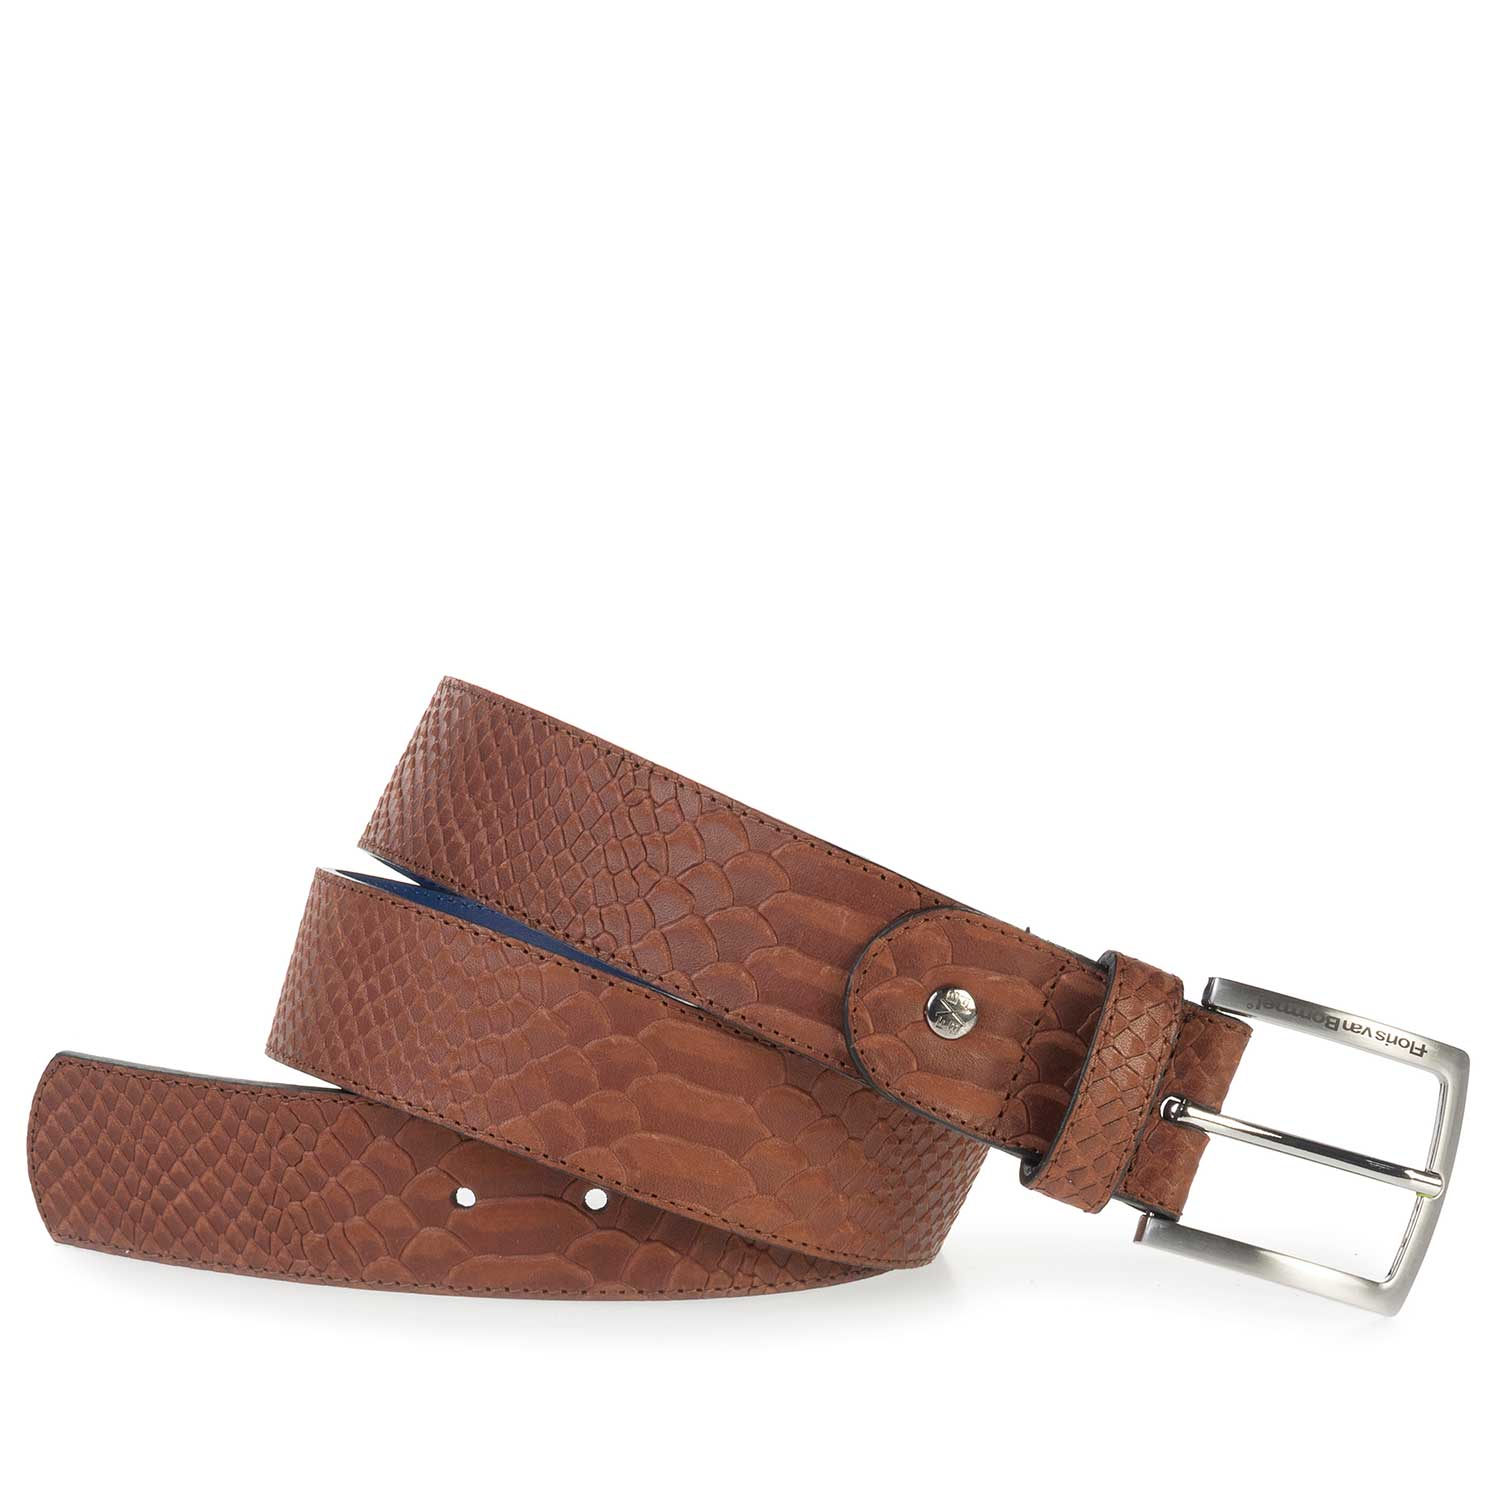 75184/06 - Cognac- coloured leather belt finished with a snake print